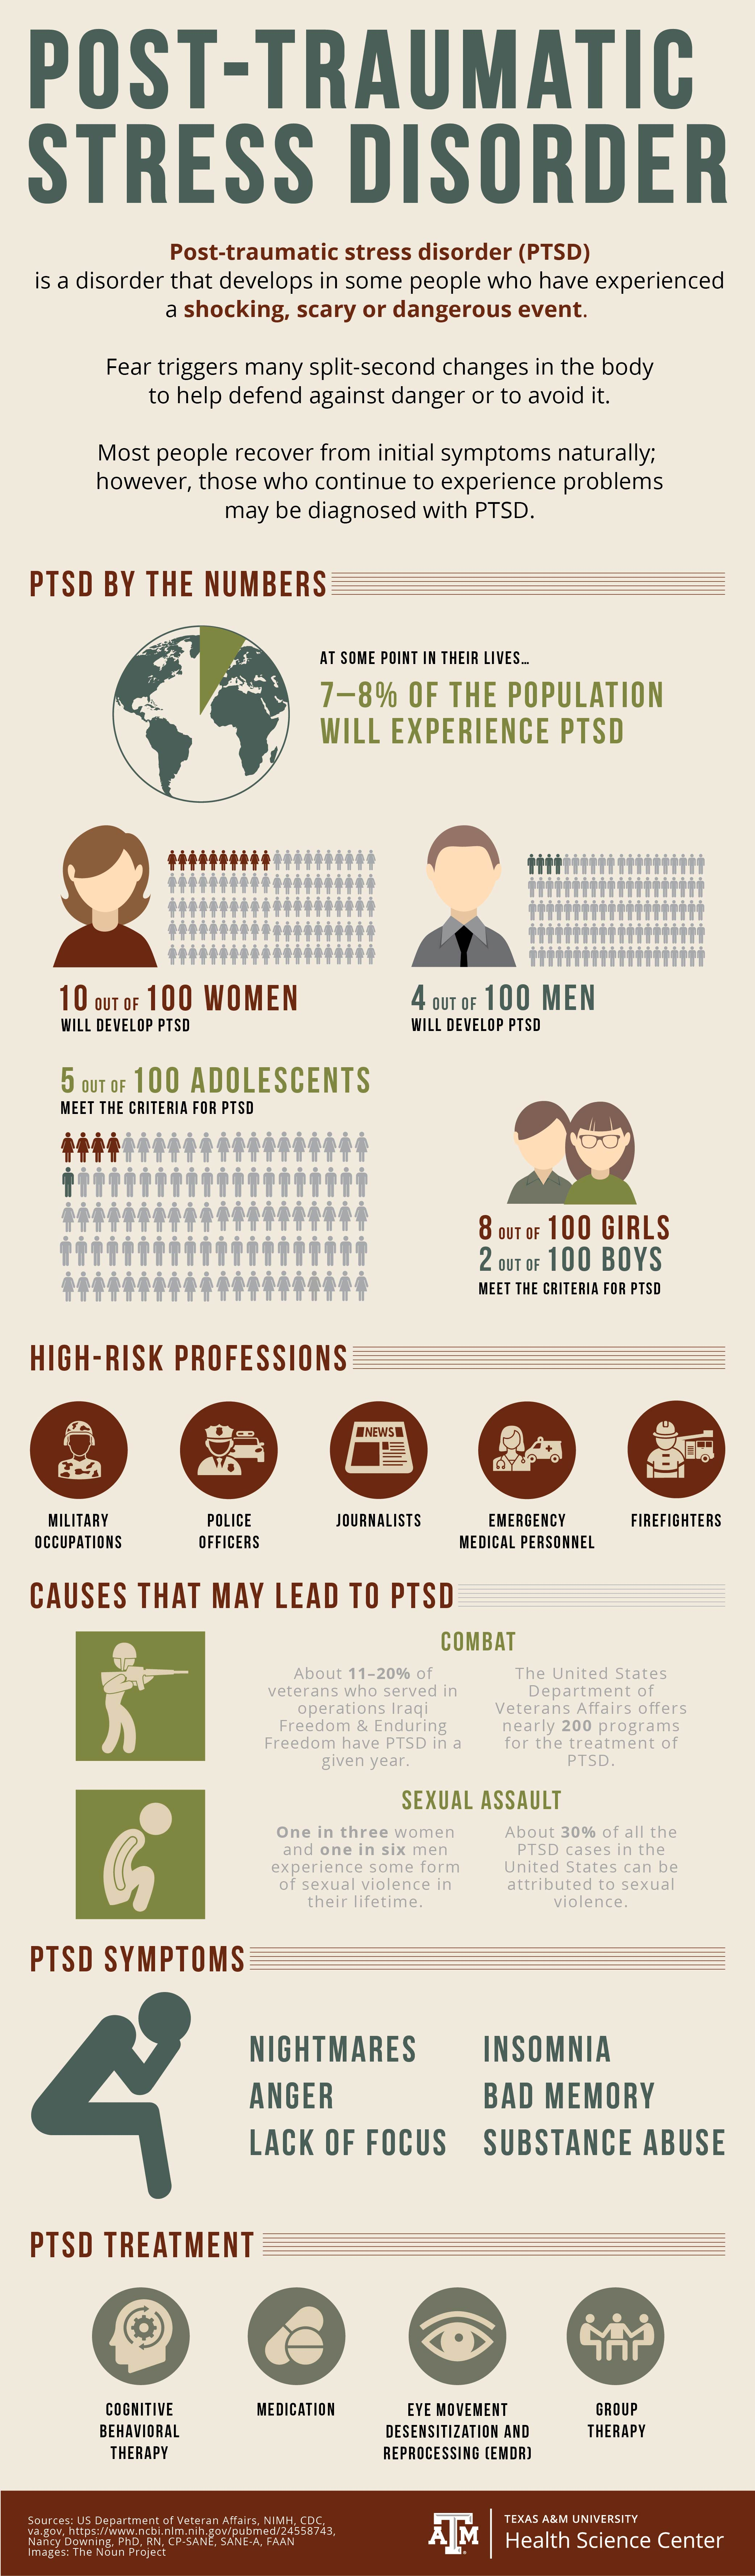 Post Traumatic Stress Disorder-PTSD-Infographic that details statistics, causes, symptoms and treatments of PTSD